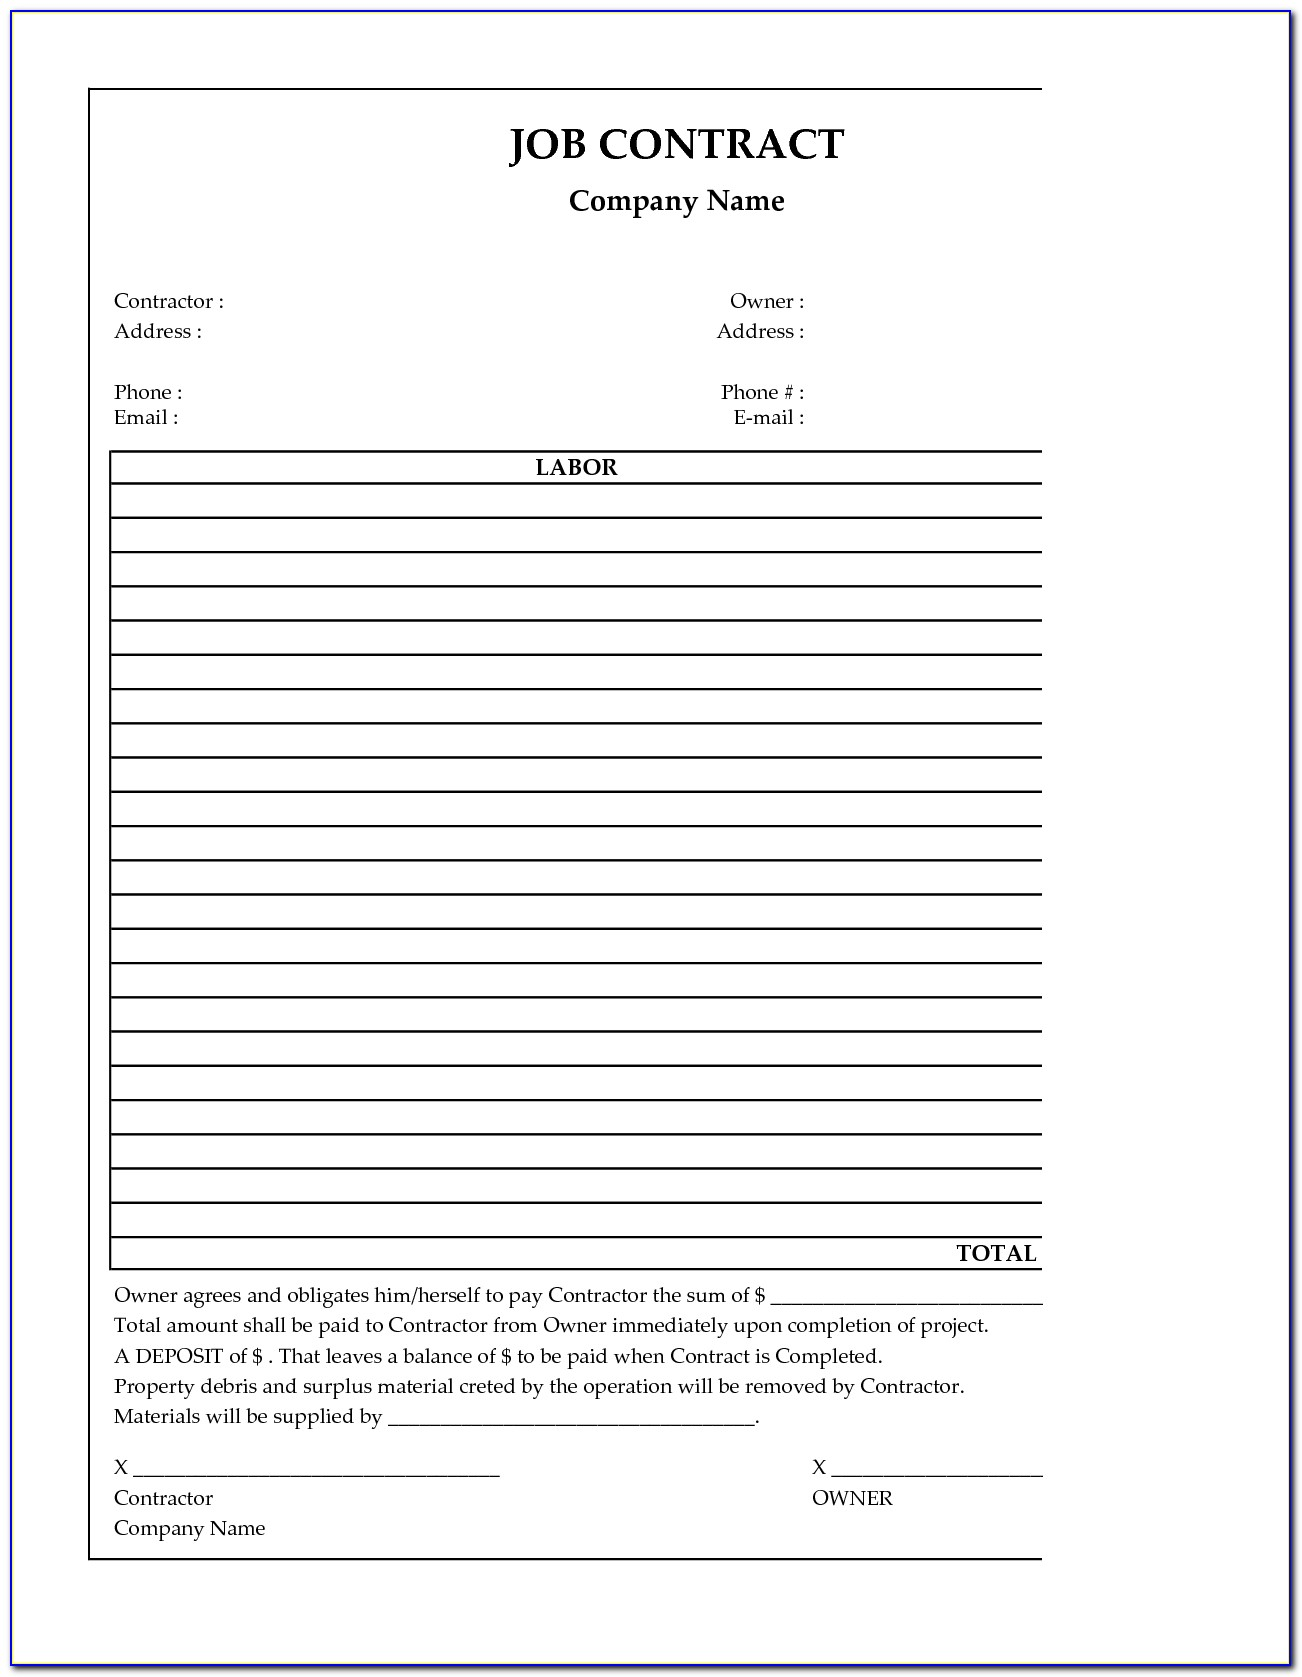 General Labor Resume Objective Examples